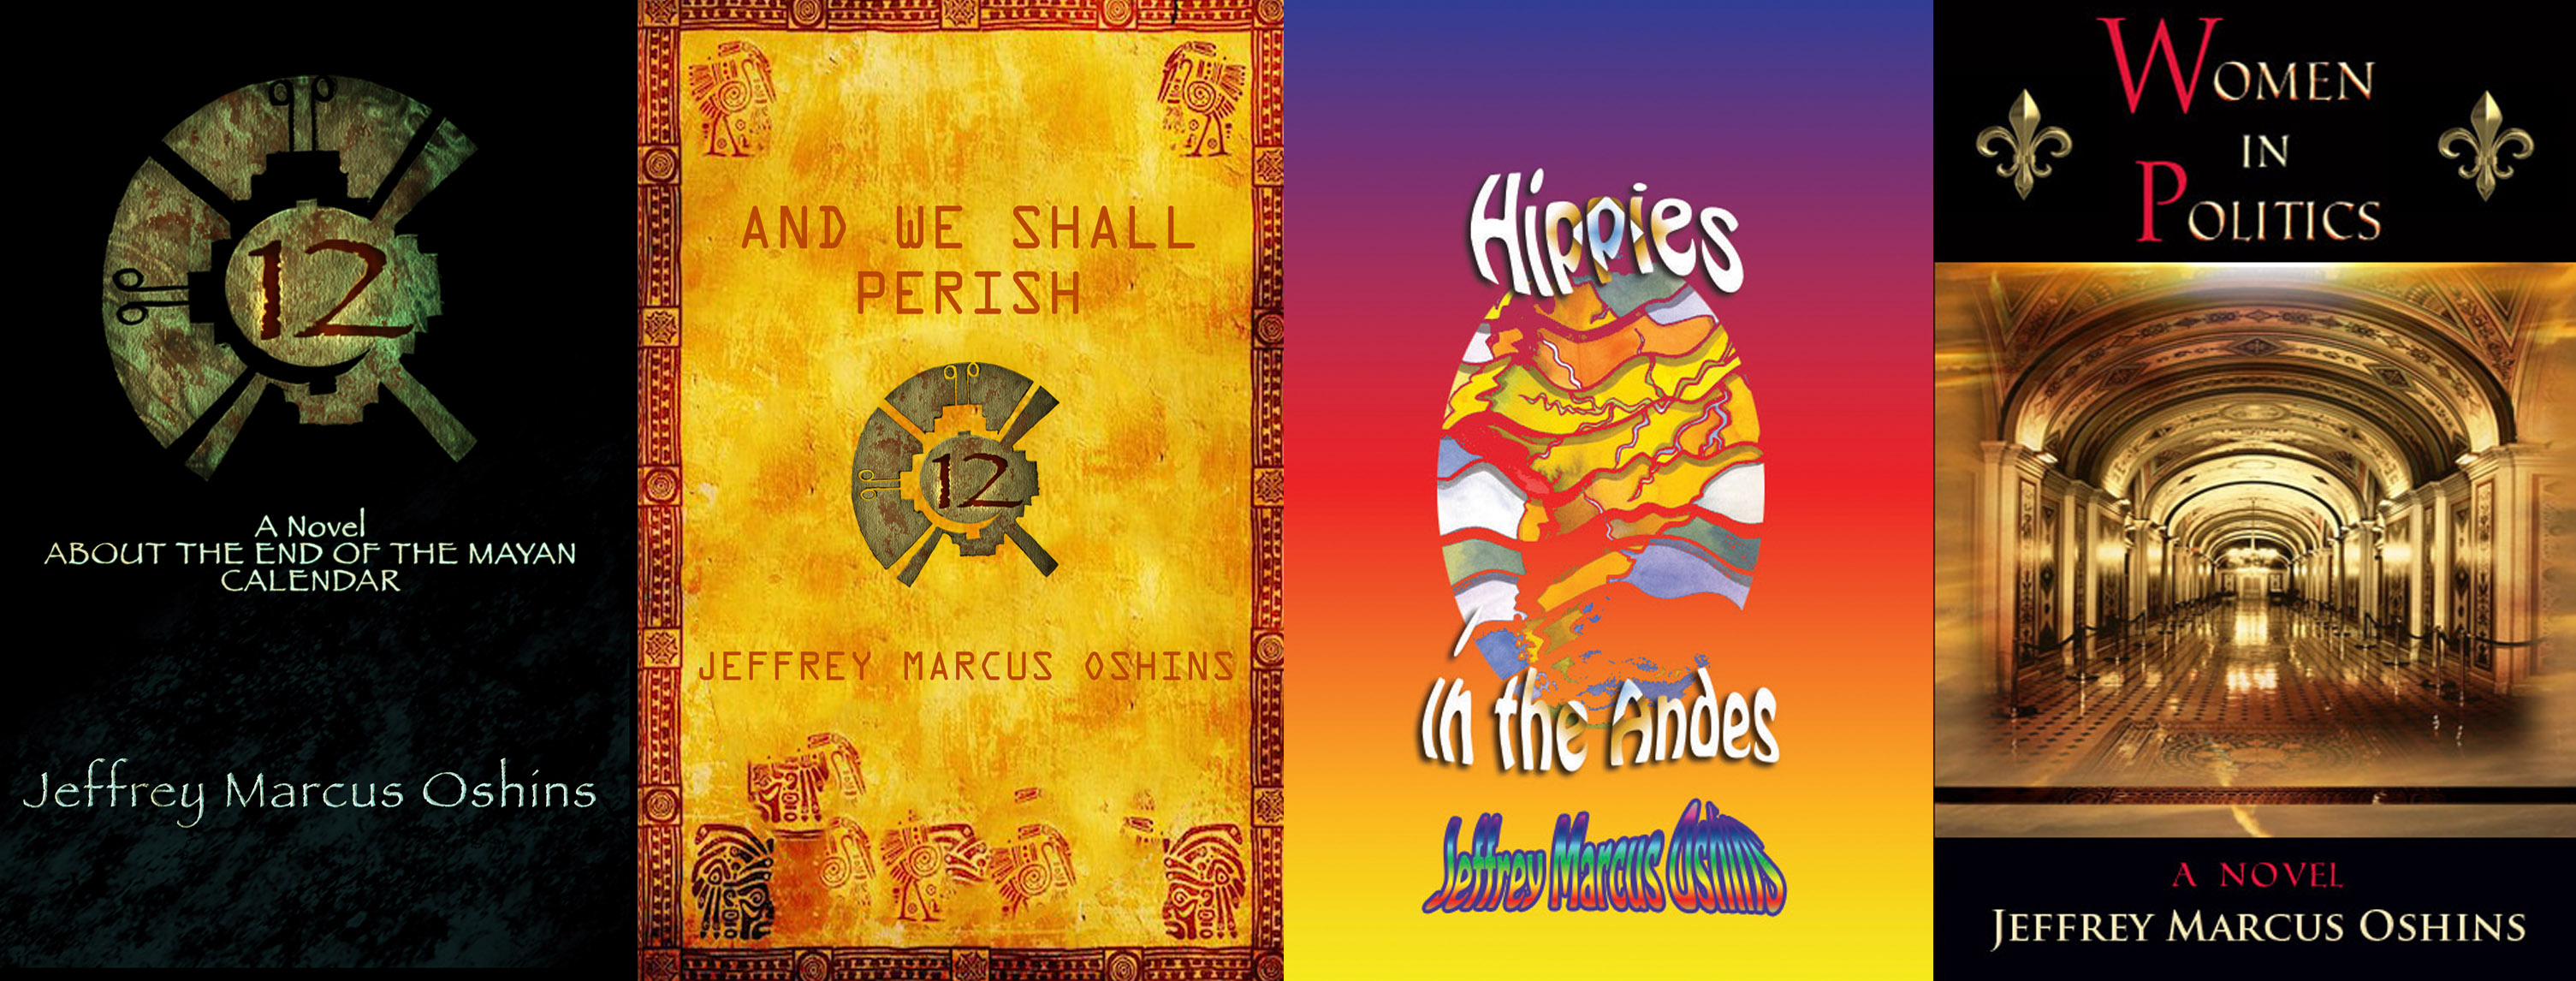 Four novels by Jeffrey Marcus Oshins